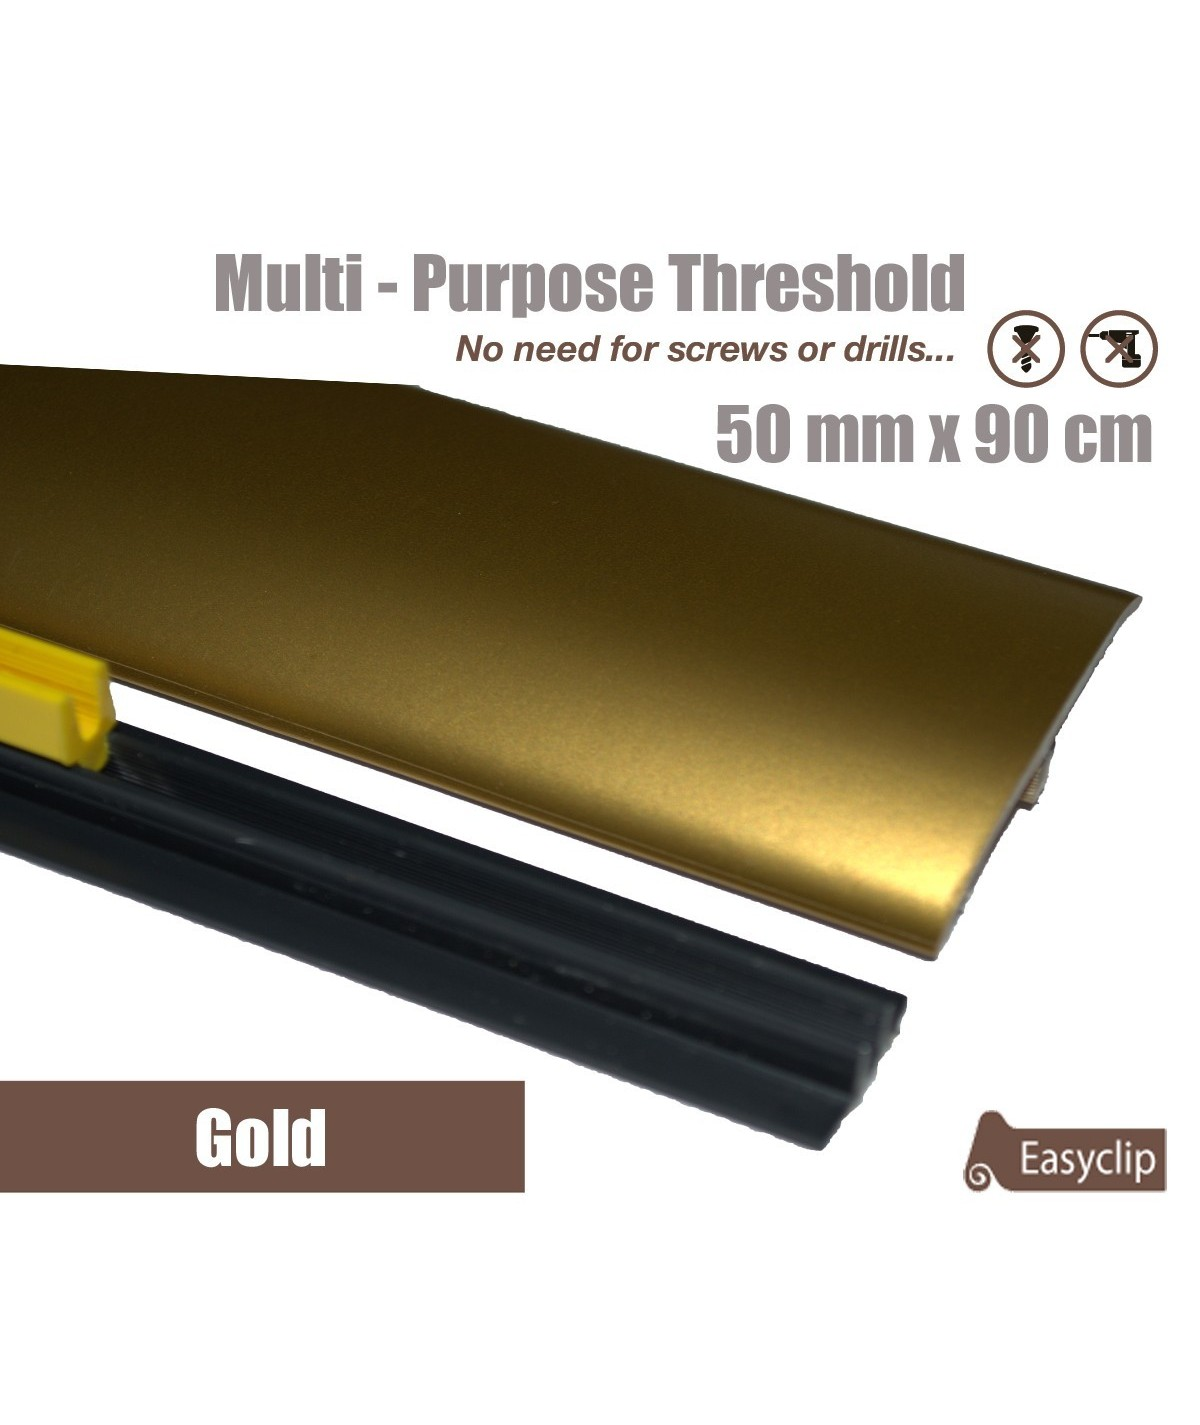 Gold Laminated Transition Threshold Strip 50mm x 90cm Multi-Height/Pivots